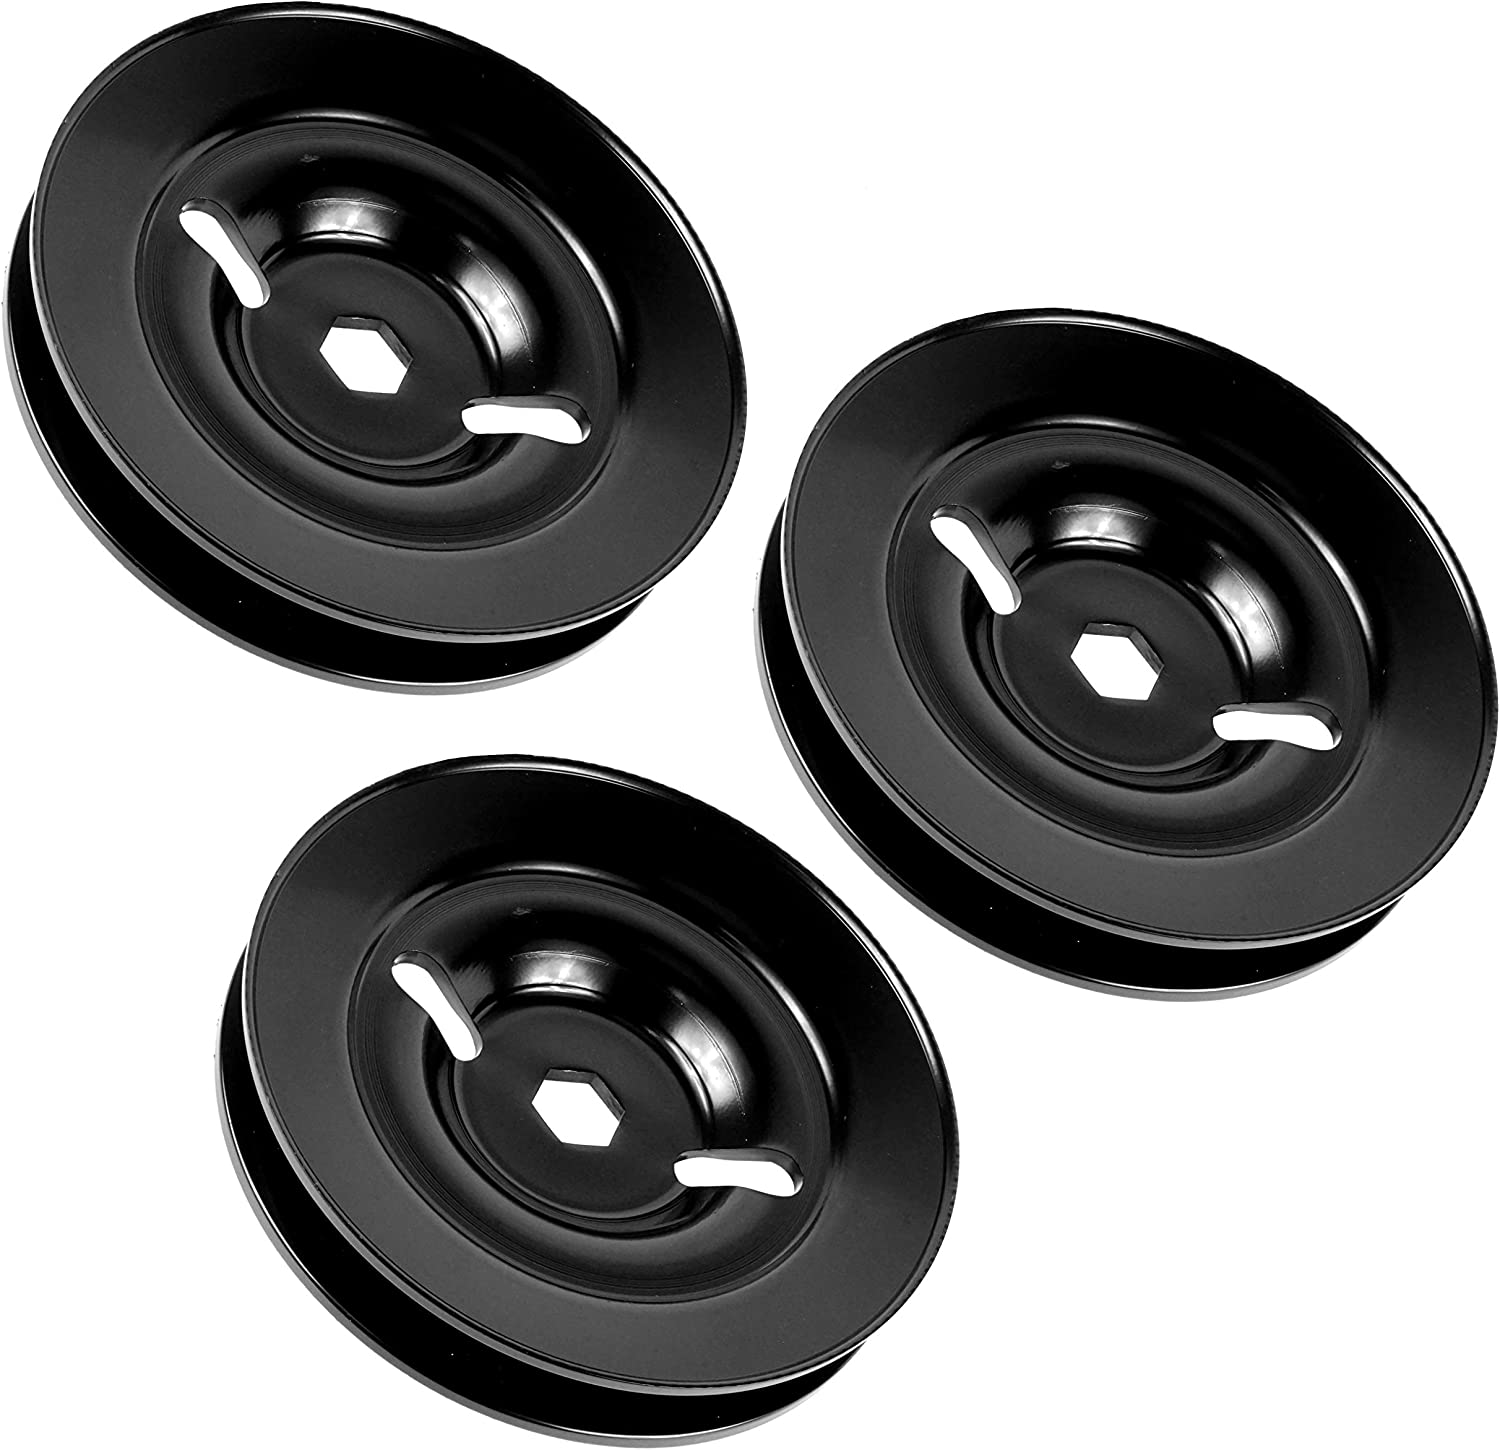 Caltric 3 Spindle Max 48% OFF Pulley Complete Free Shipping Compatible M155979 L130 Deere John with